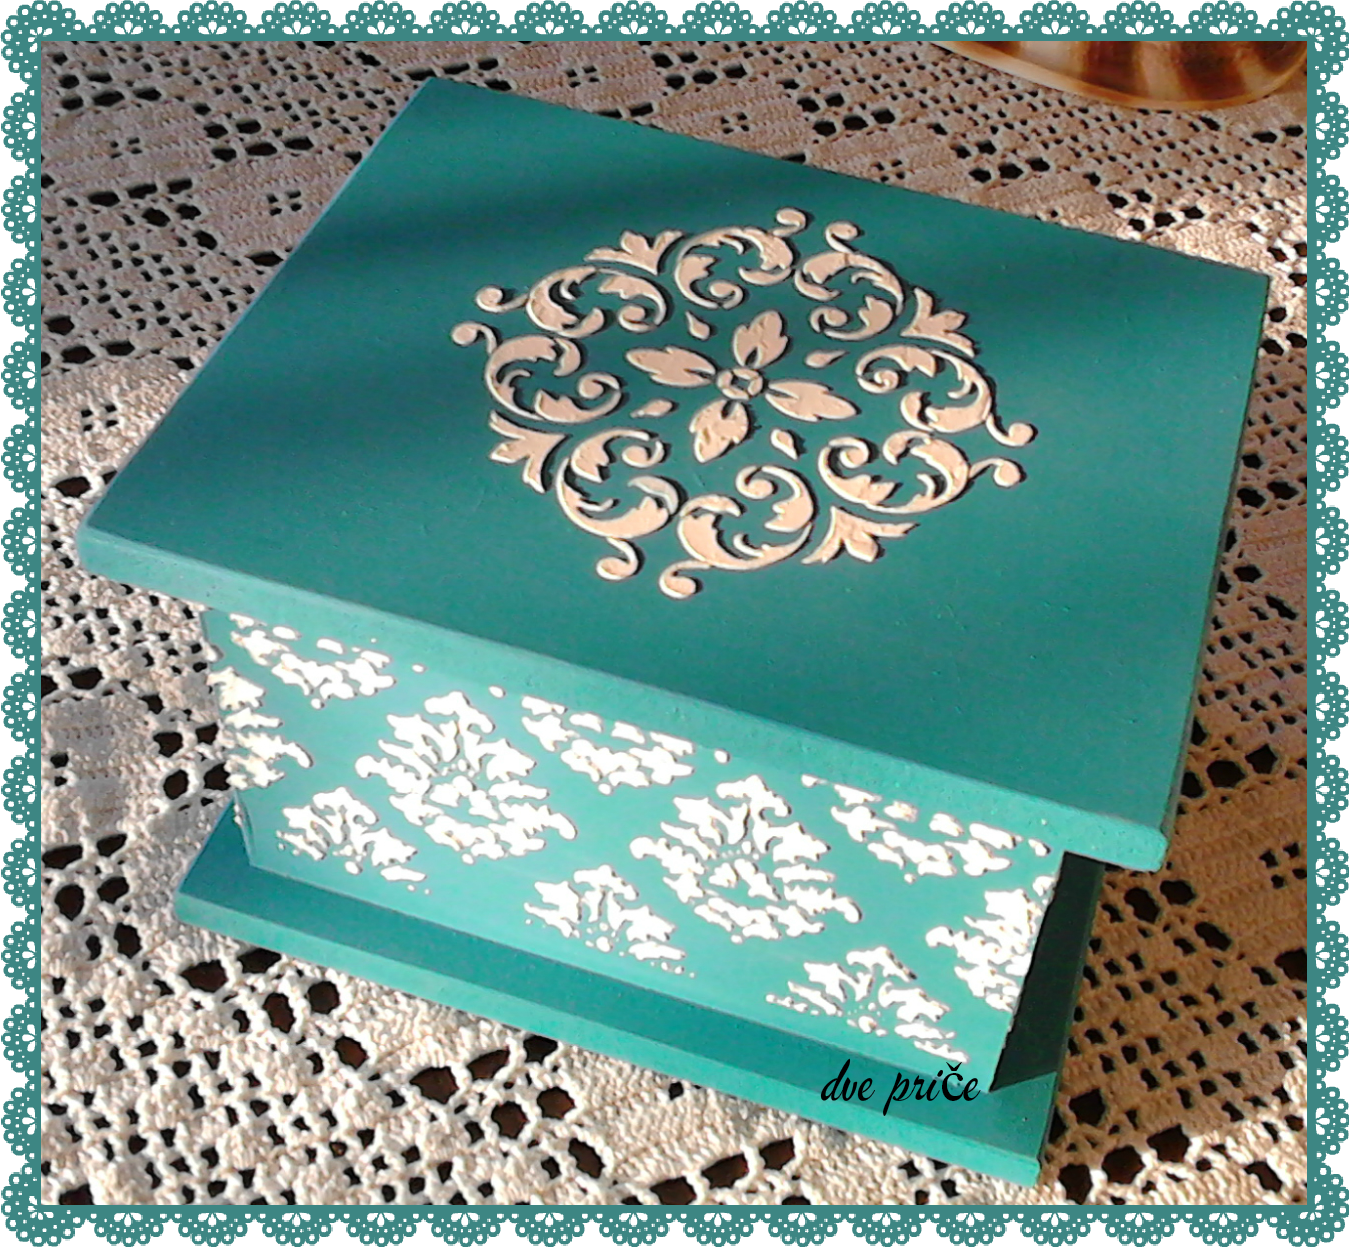 Ideas To Decorate A Box Httpswwwfacebookpagesdvepricehomedecor